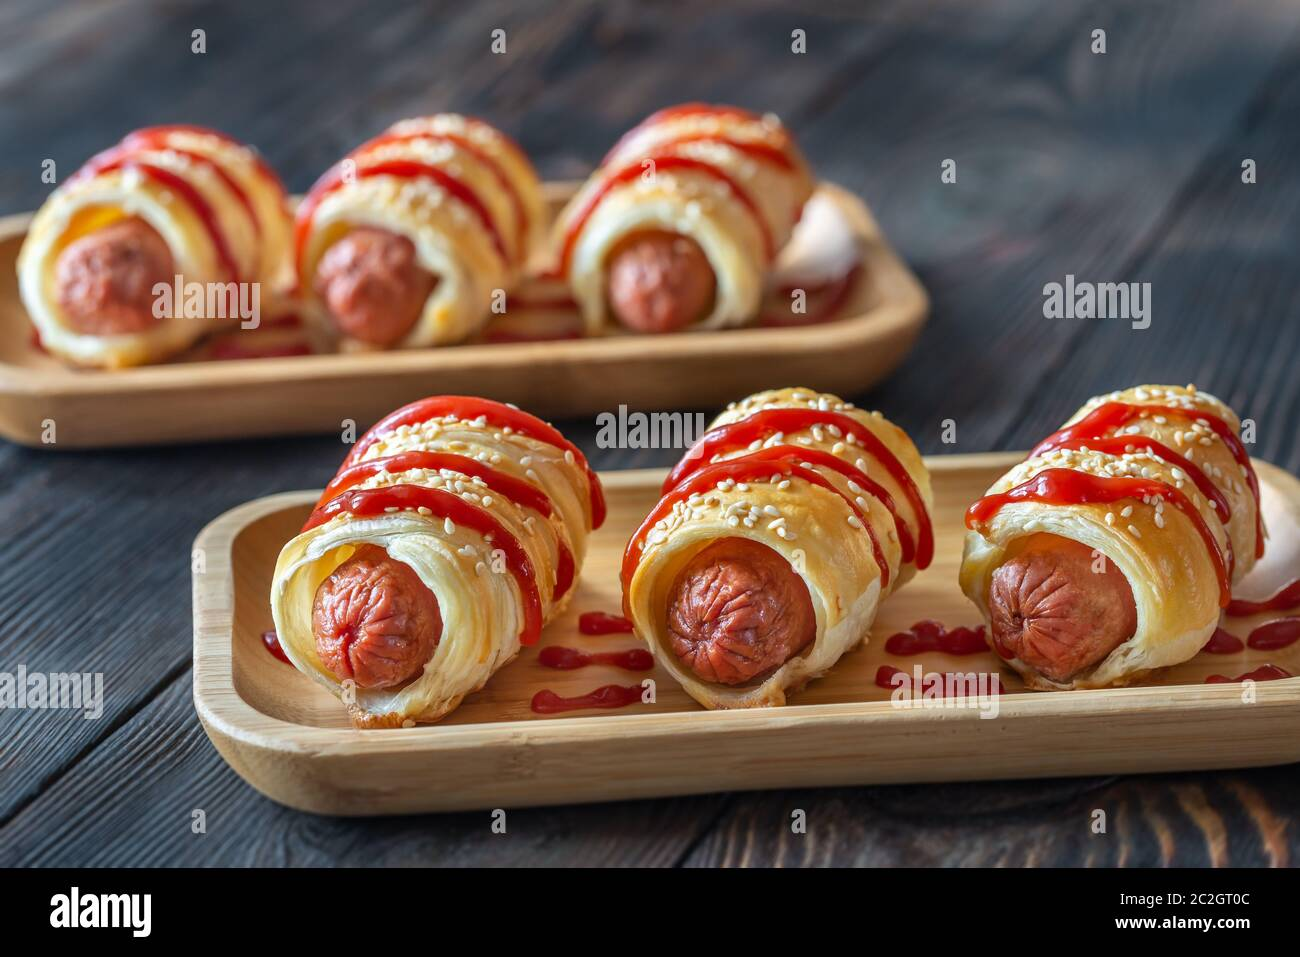 Sausage rolls on the wooden tray: top view Stock Photo